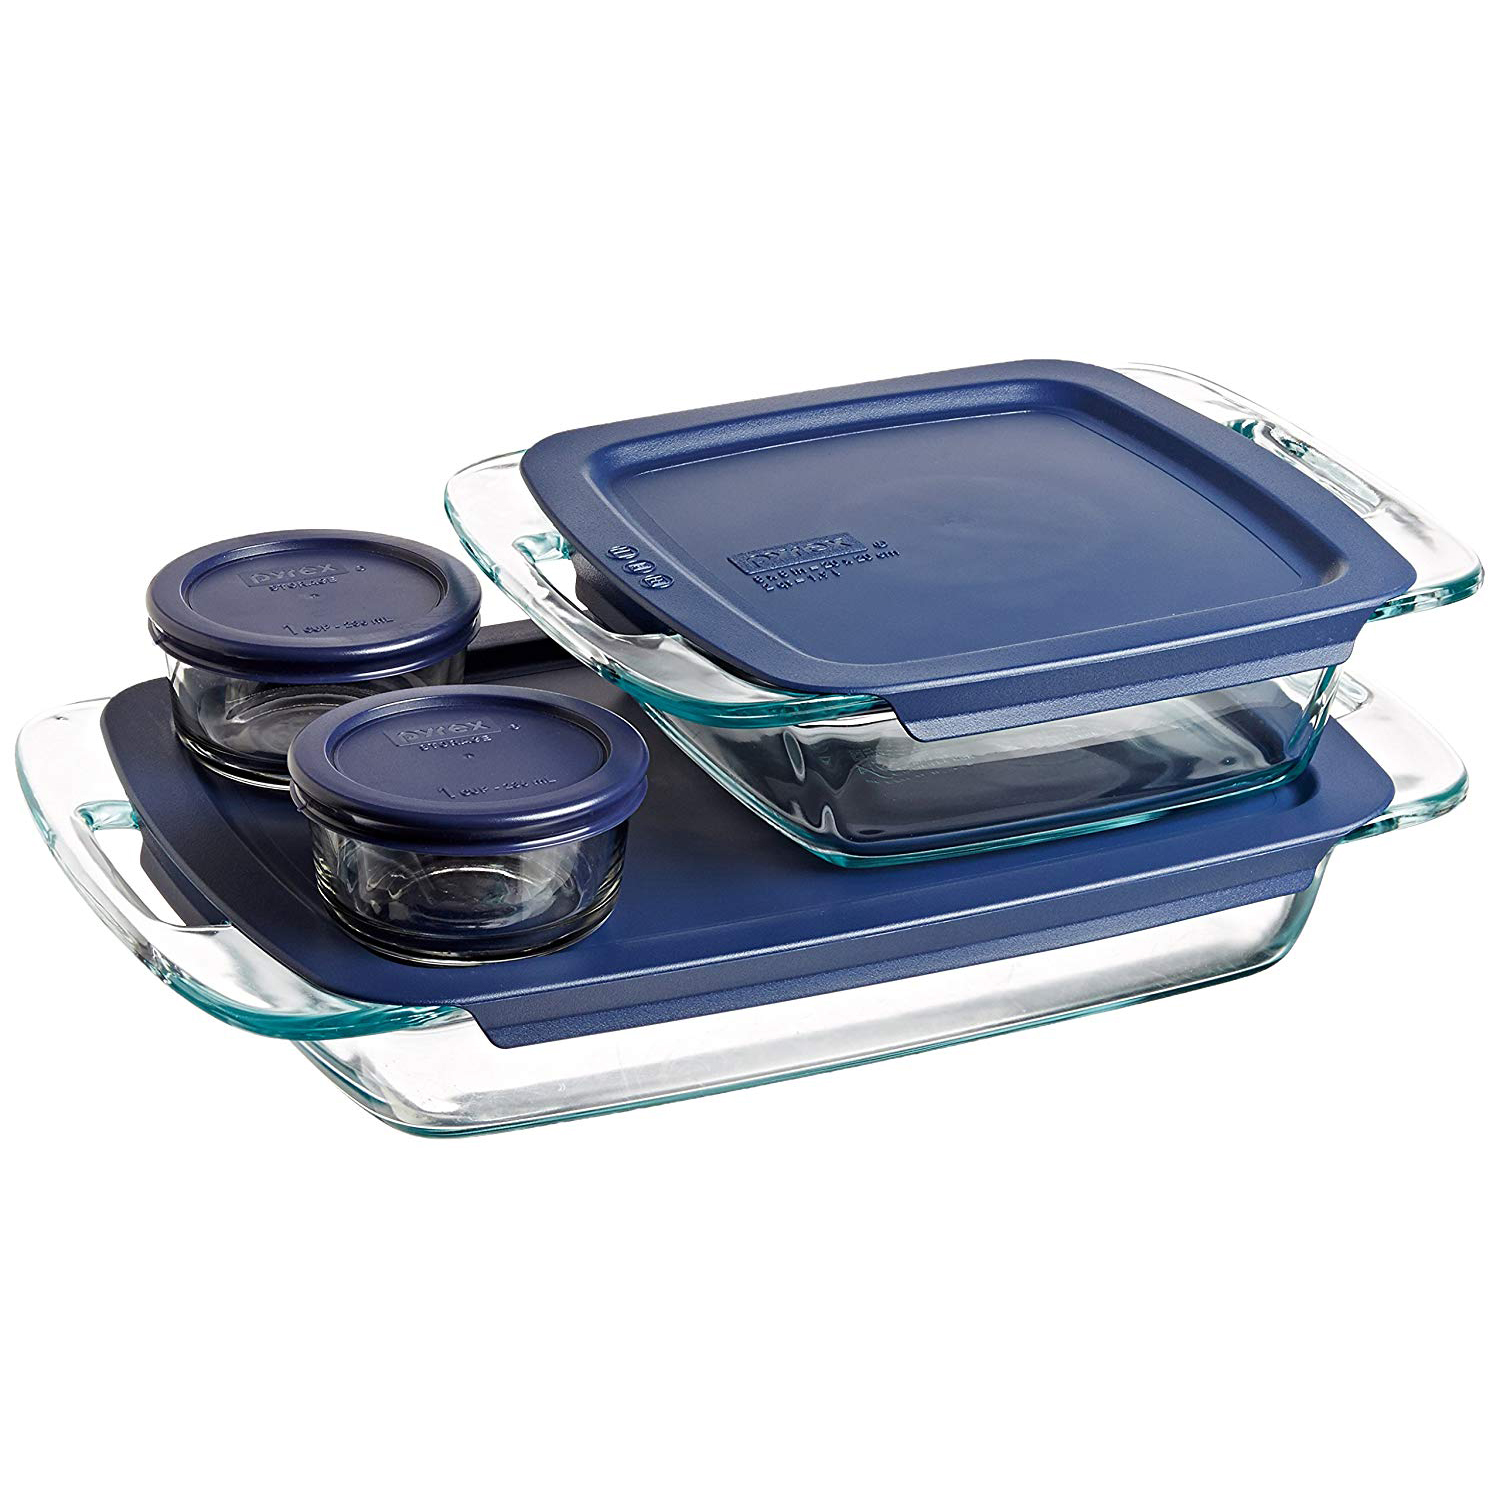 Pyrex casserole dishes with lids and two small round containers with lids